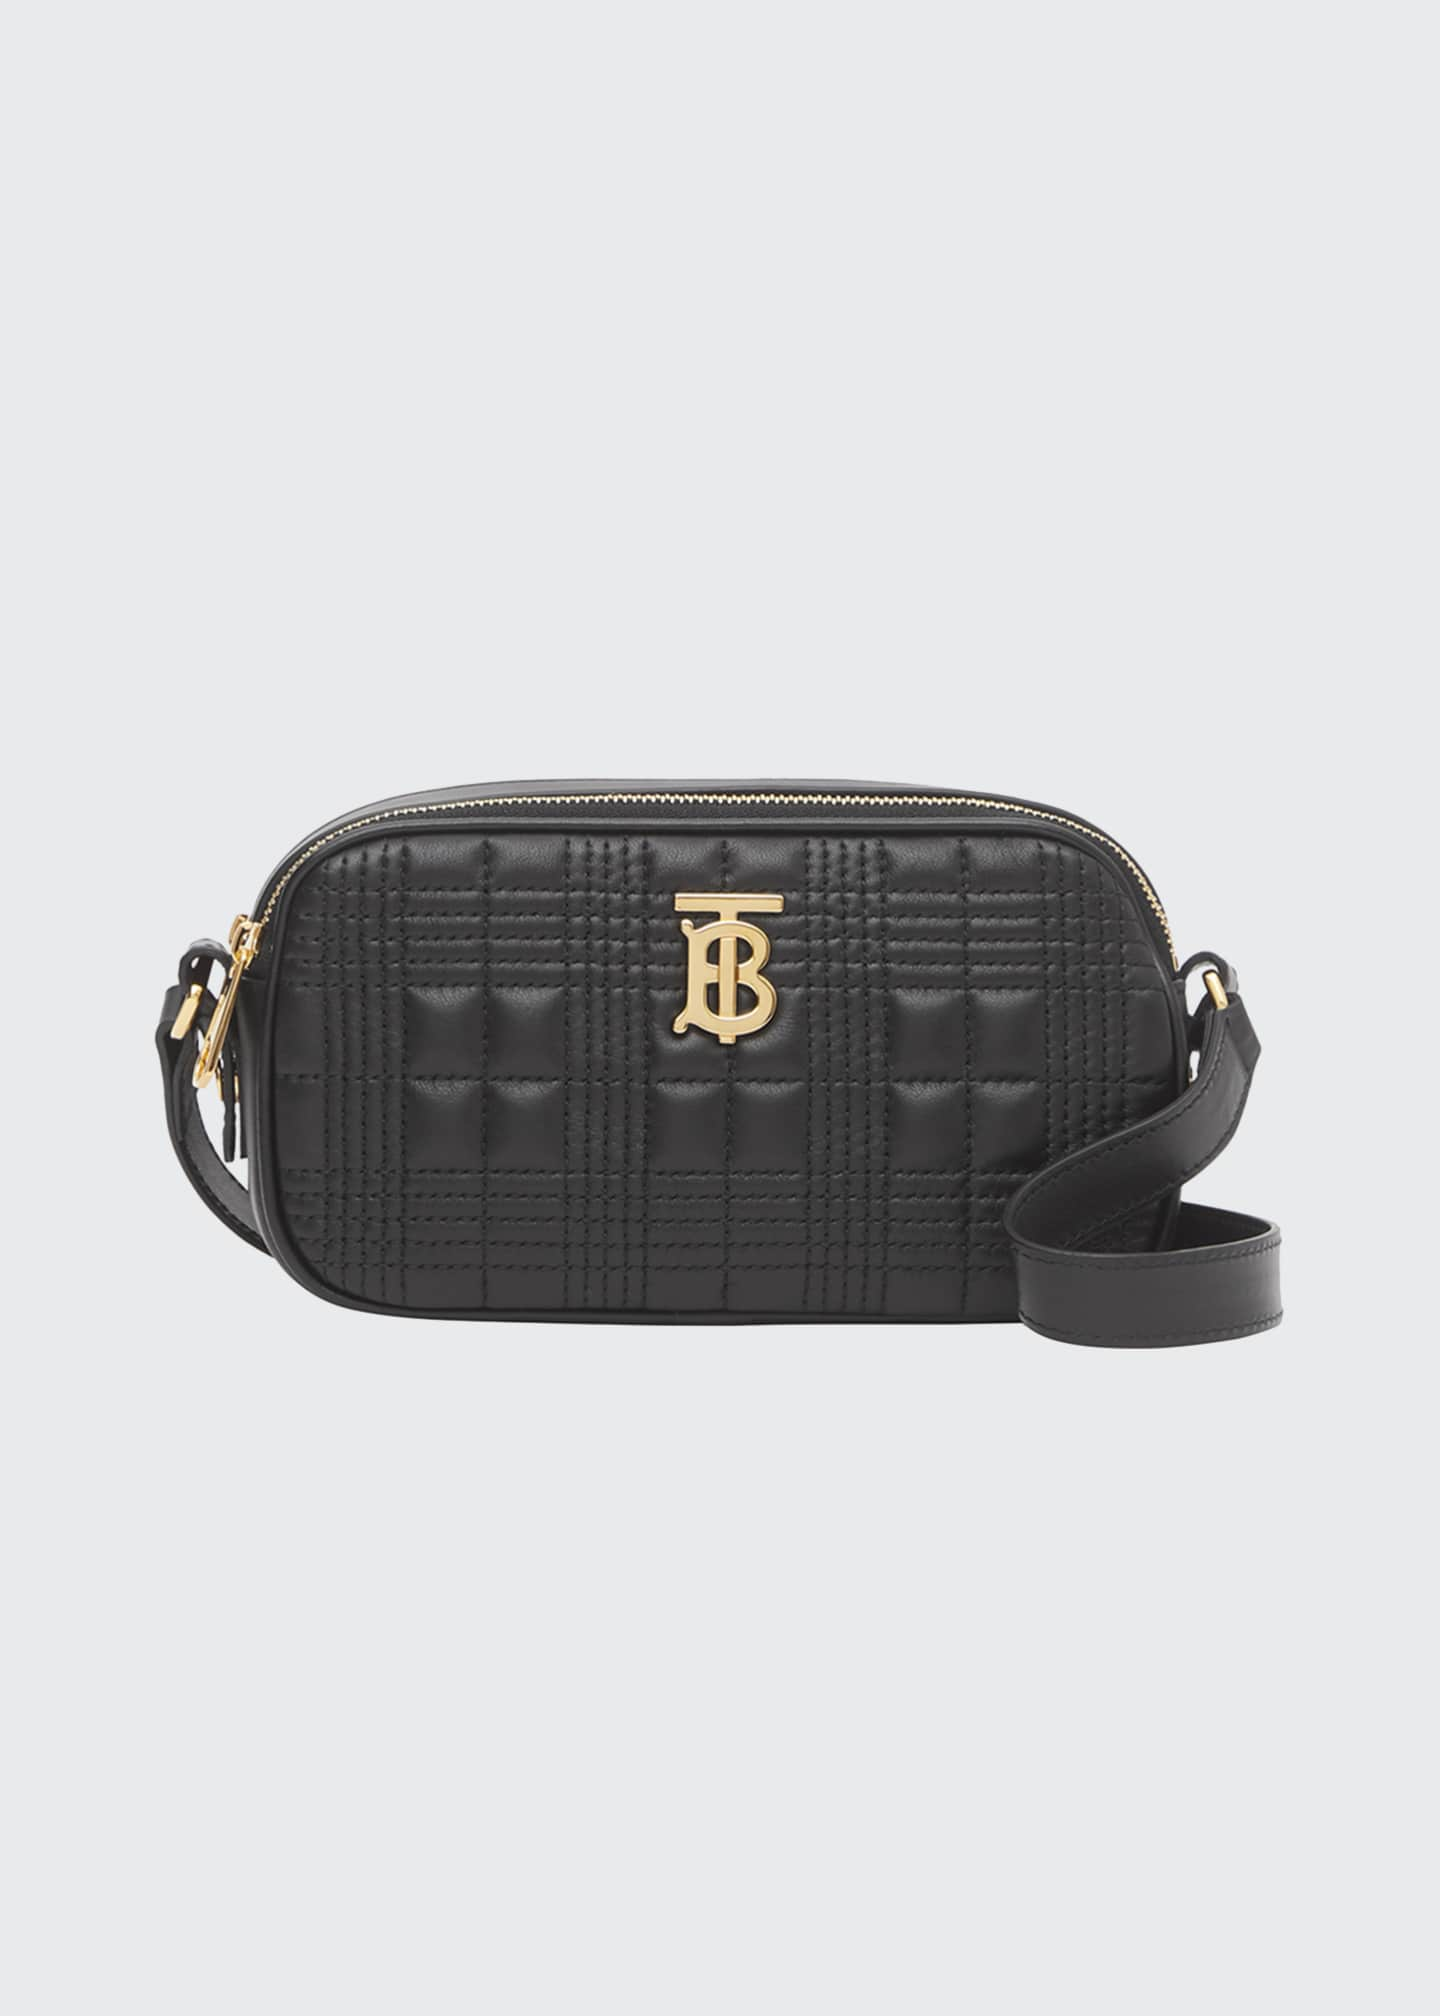 Burberry Micro Quilted TB Crossbody Bag